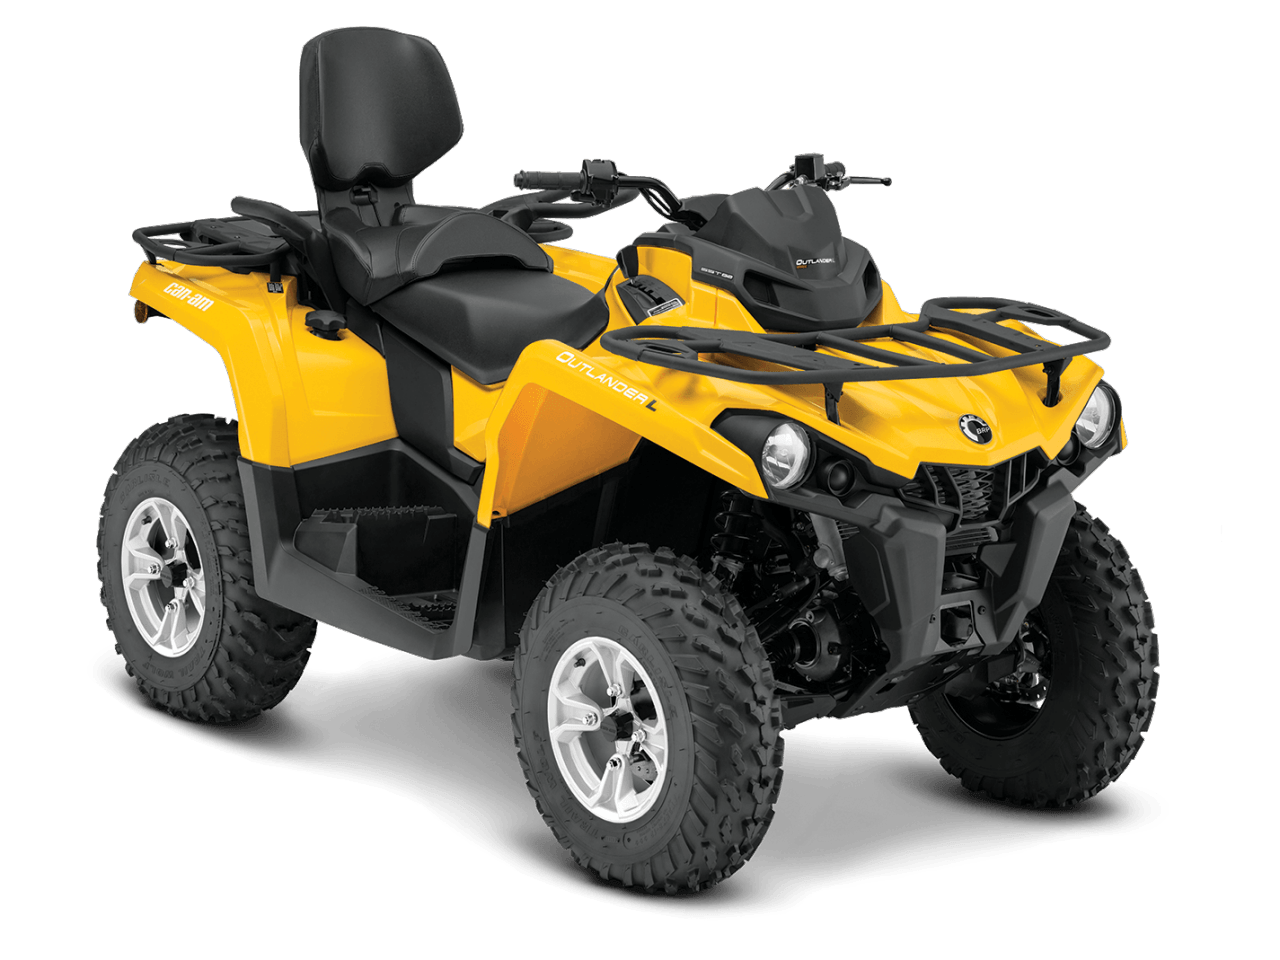 2016 Can-Am Outlander L MAX DPS 450 in Memphis, Tennessee